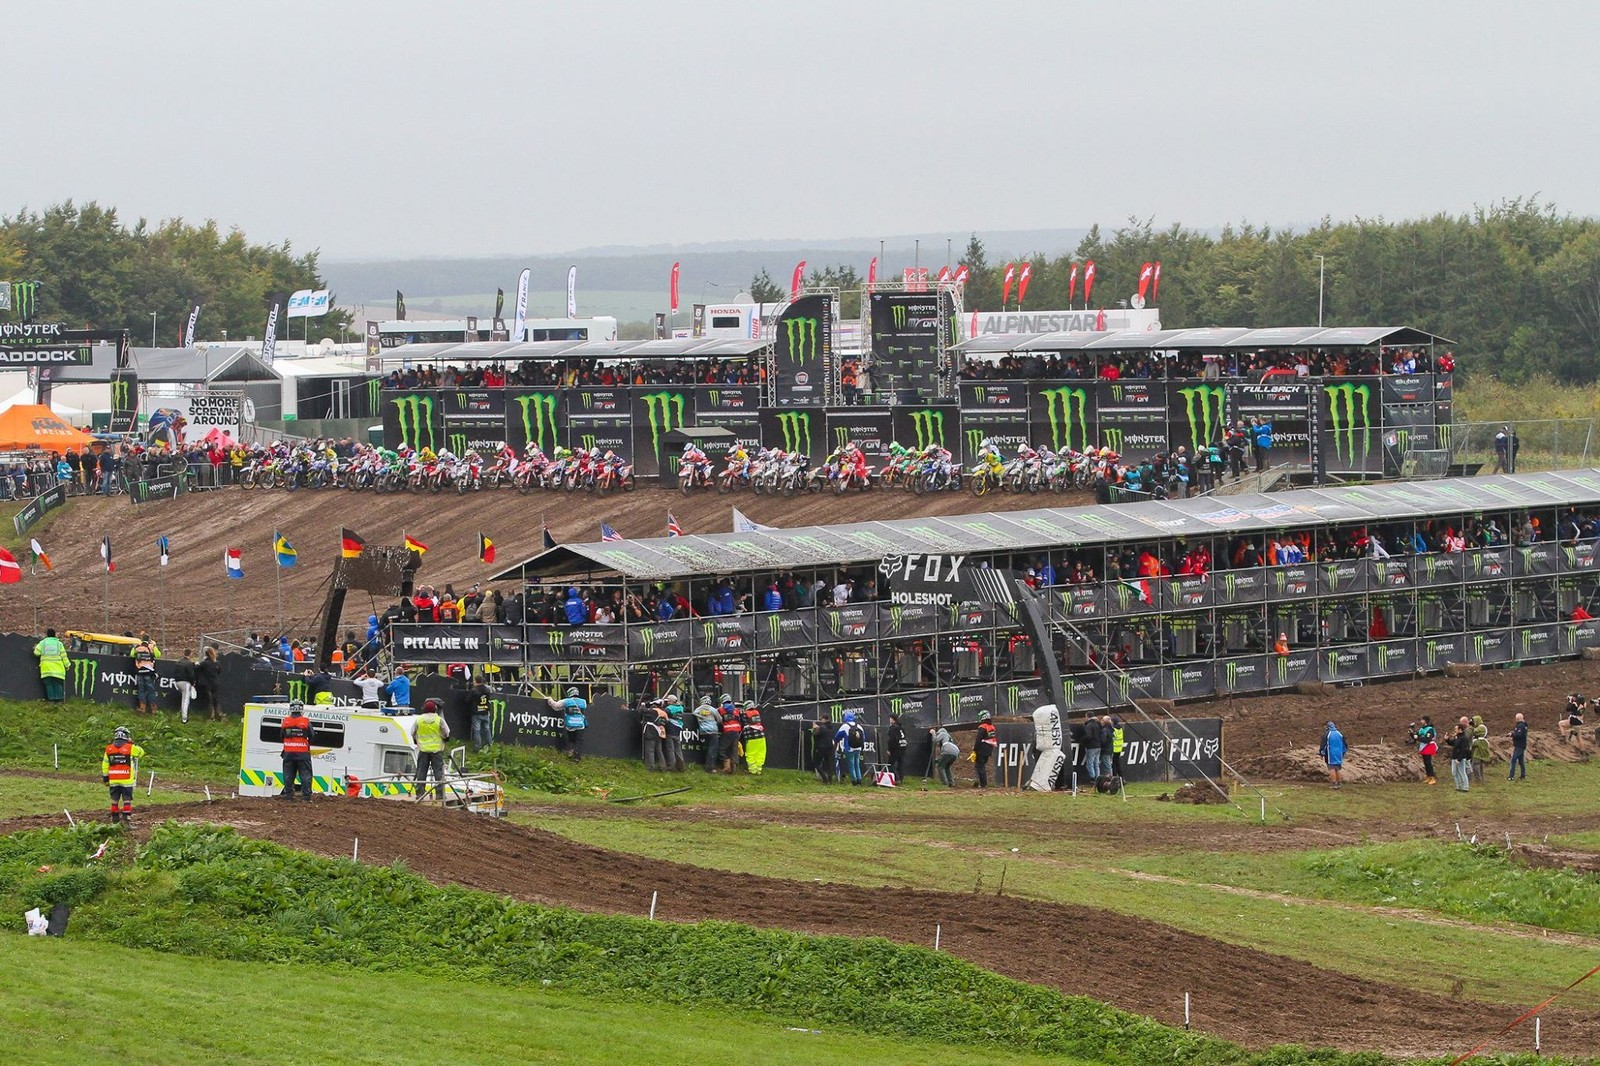 The BMX-style start straight certainly made things a bit more interesting on what's already a totally beautiful Matterley Basin motocross track.